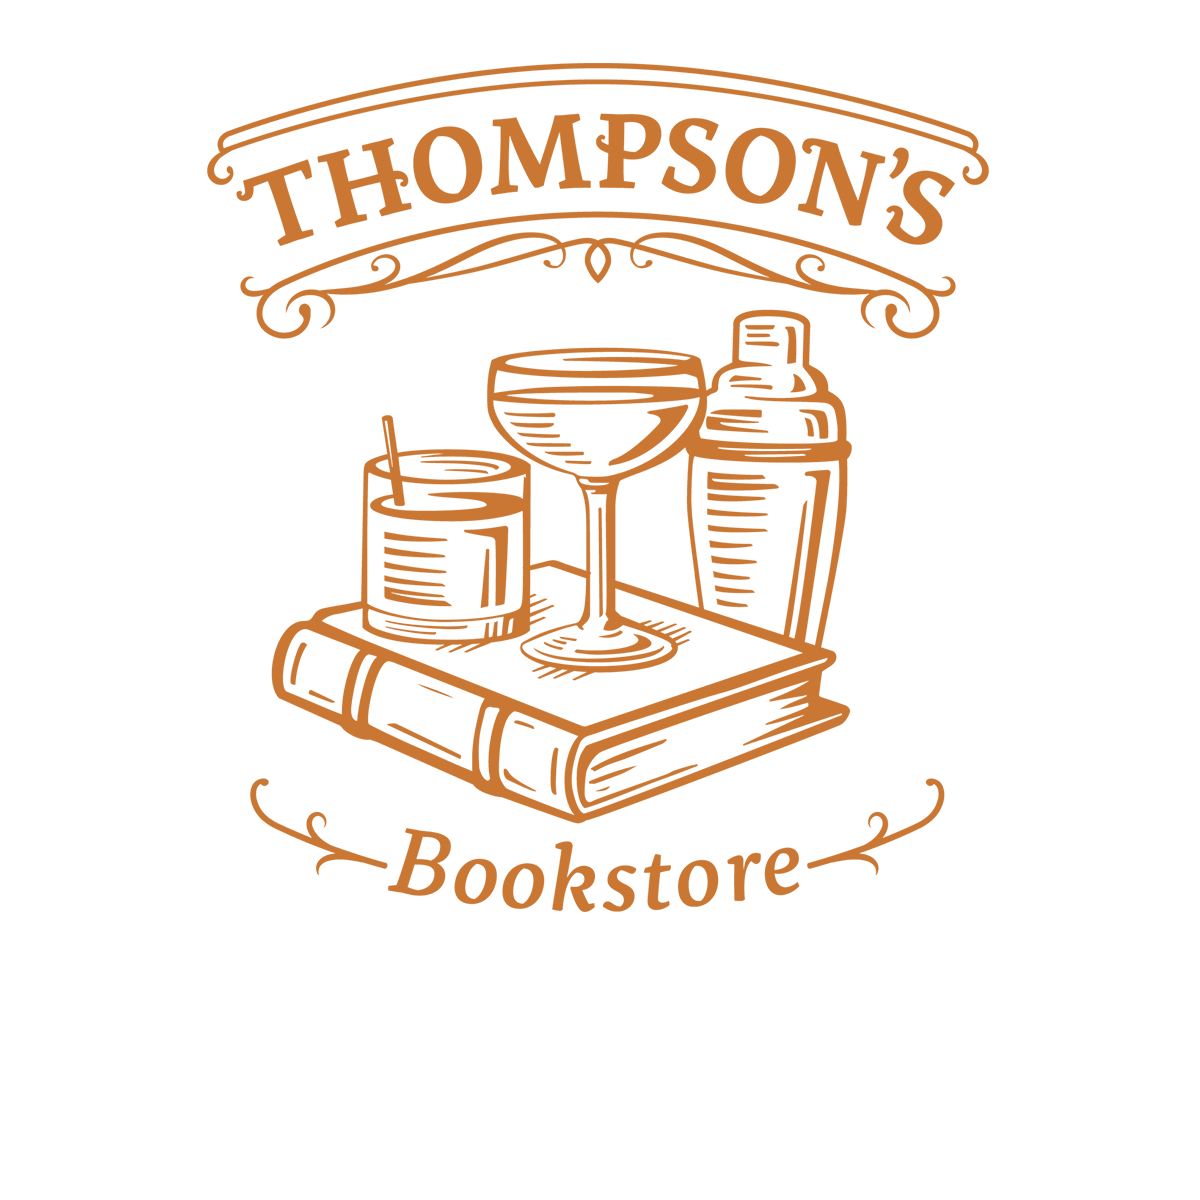 Thompson's Bookstore